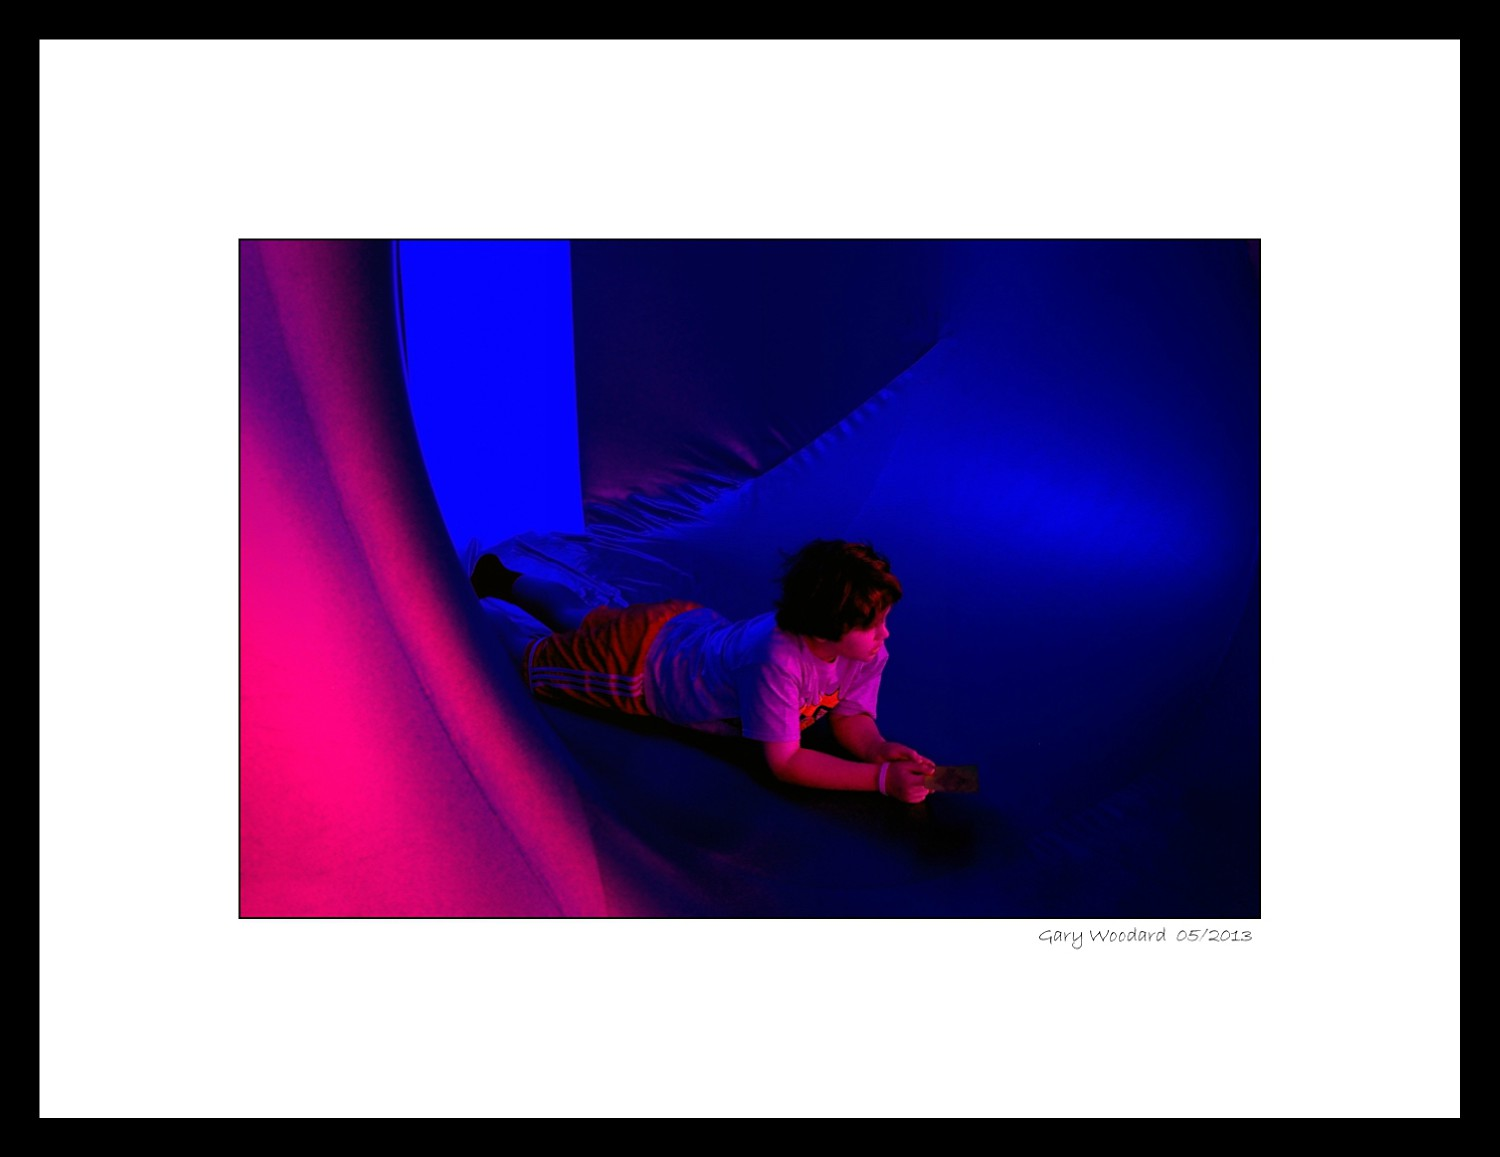 luminarium interior author woodard gary